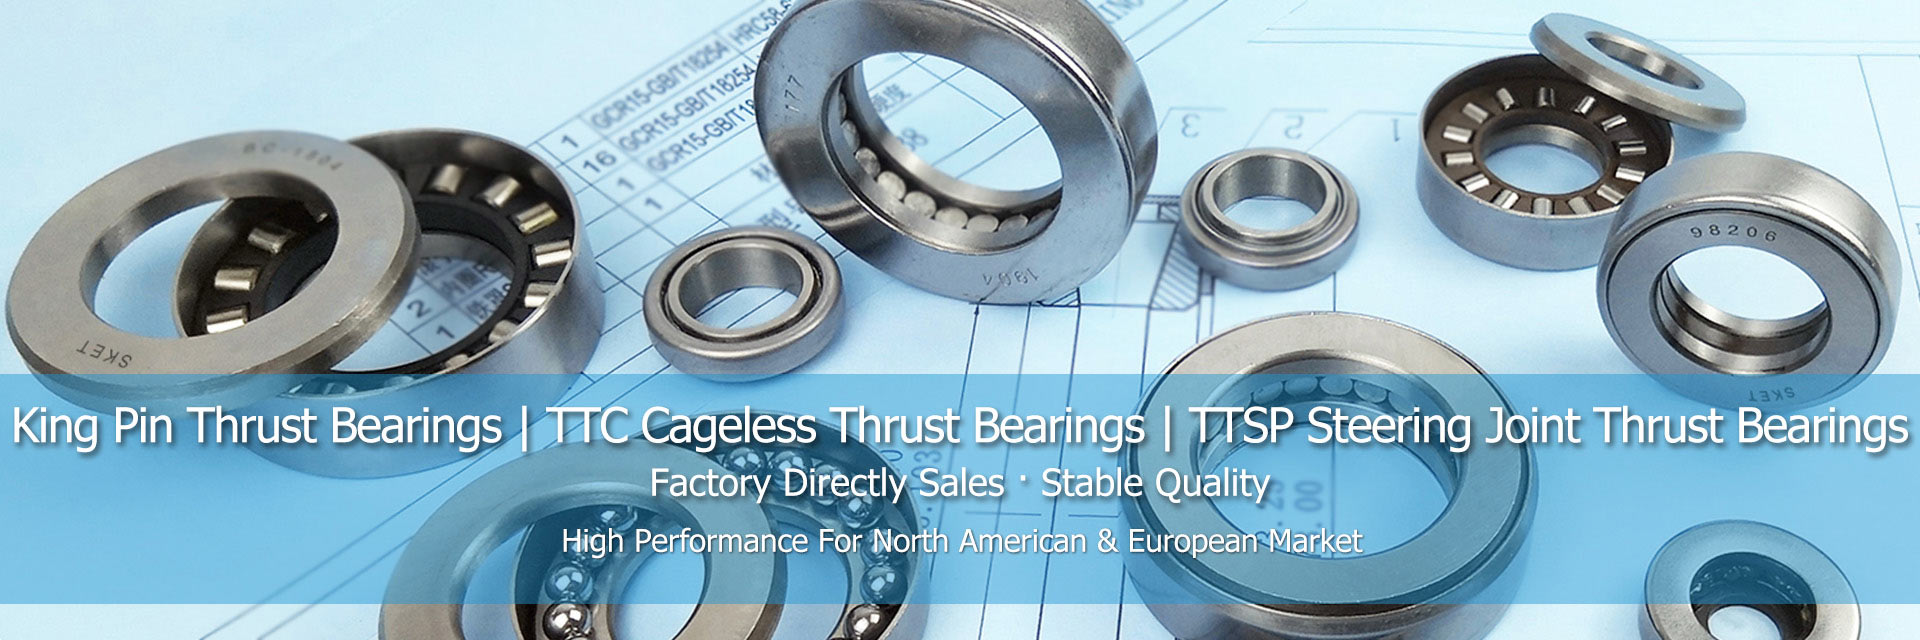 Clutch/Kingpin Thrust Bearings,TTC Cageless/TTSP Steering Joint Thrust Bearings